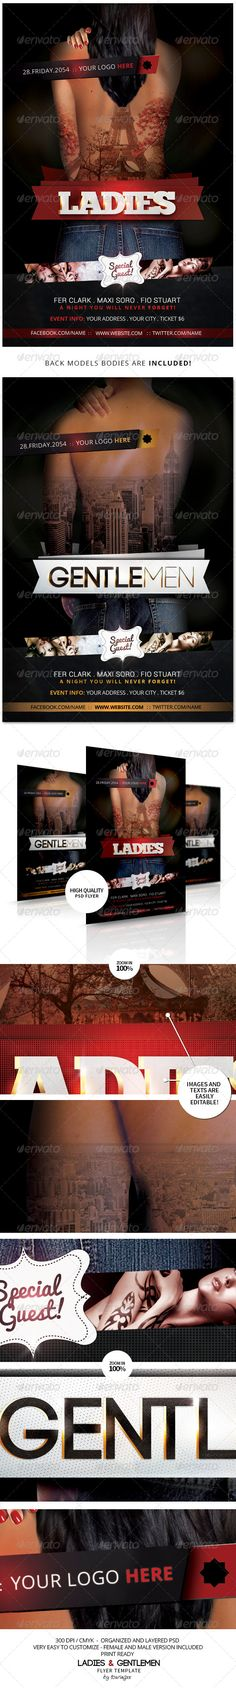 Ladies & Gentlemen Flyer Template / $6. *** This flyer is perfect for the promotion of Events, Club Parties, Concerts, Musicals, Shows, Festivals, Theaters, Promotions or Whatever You Want!.***